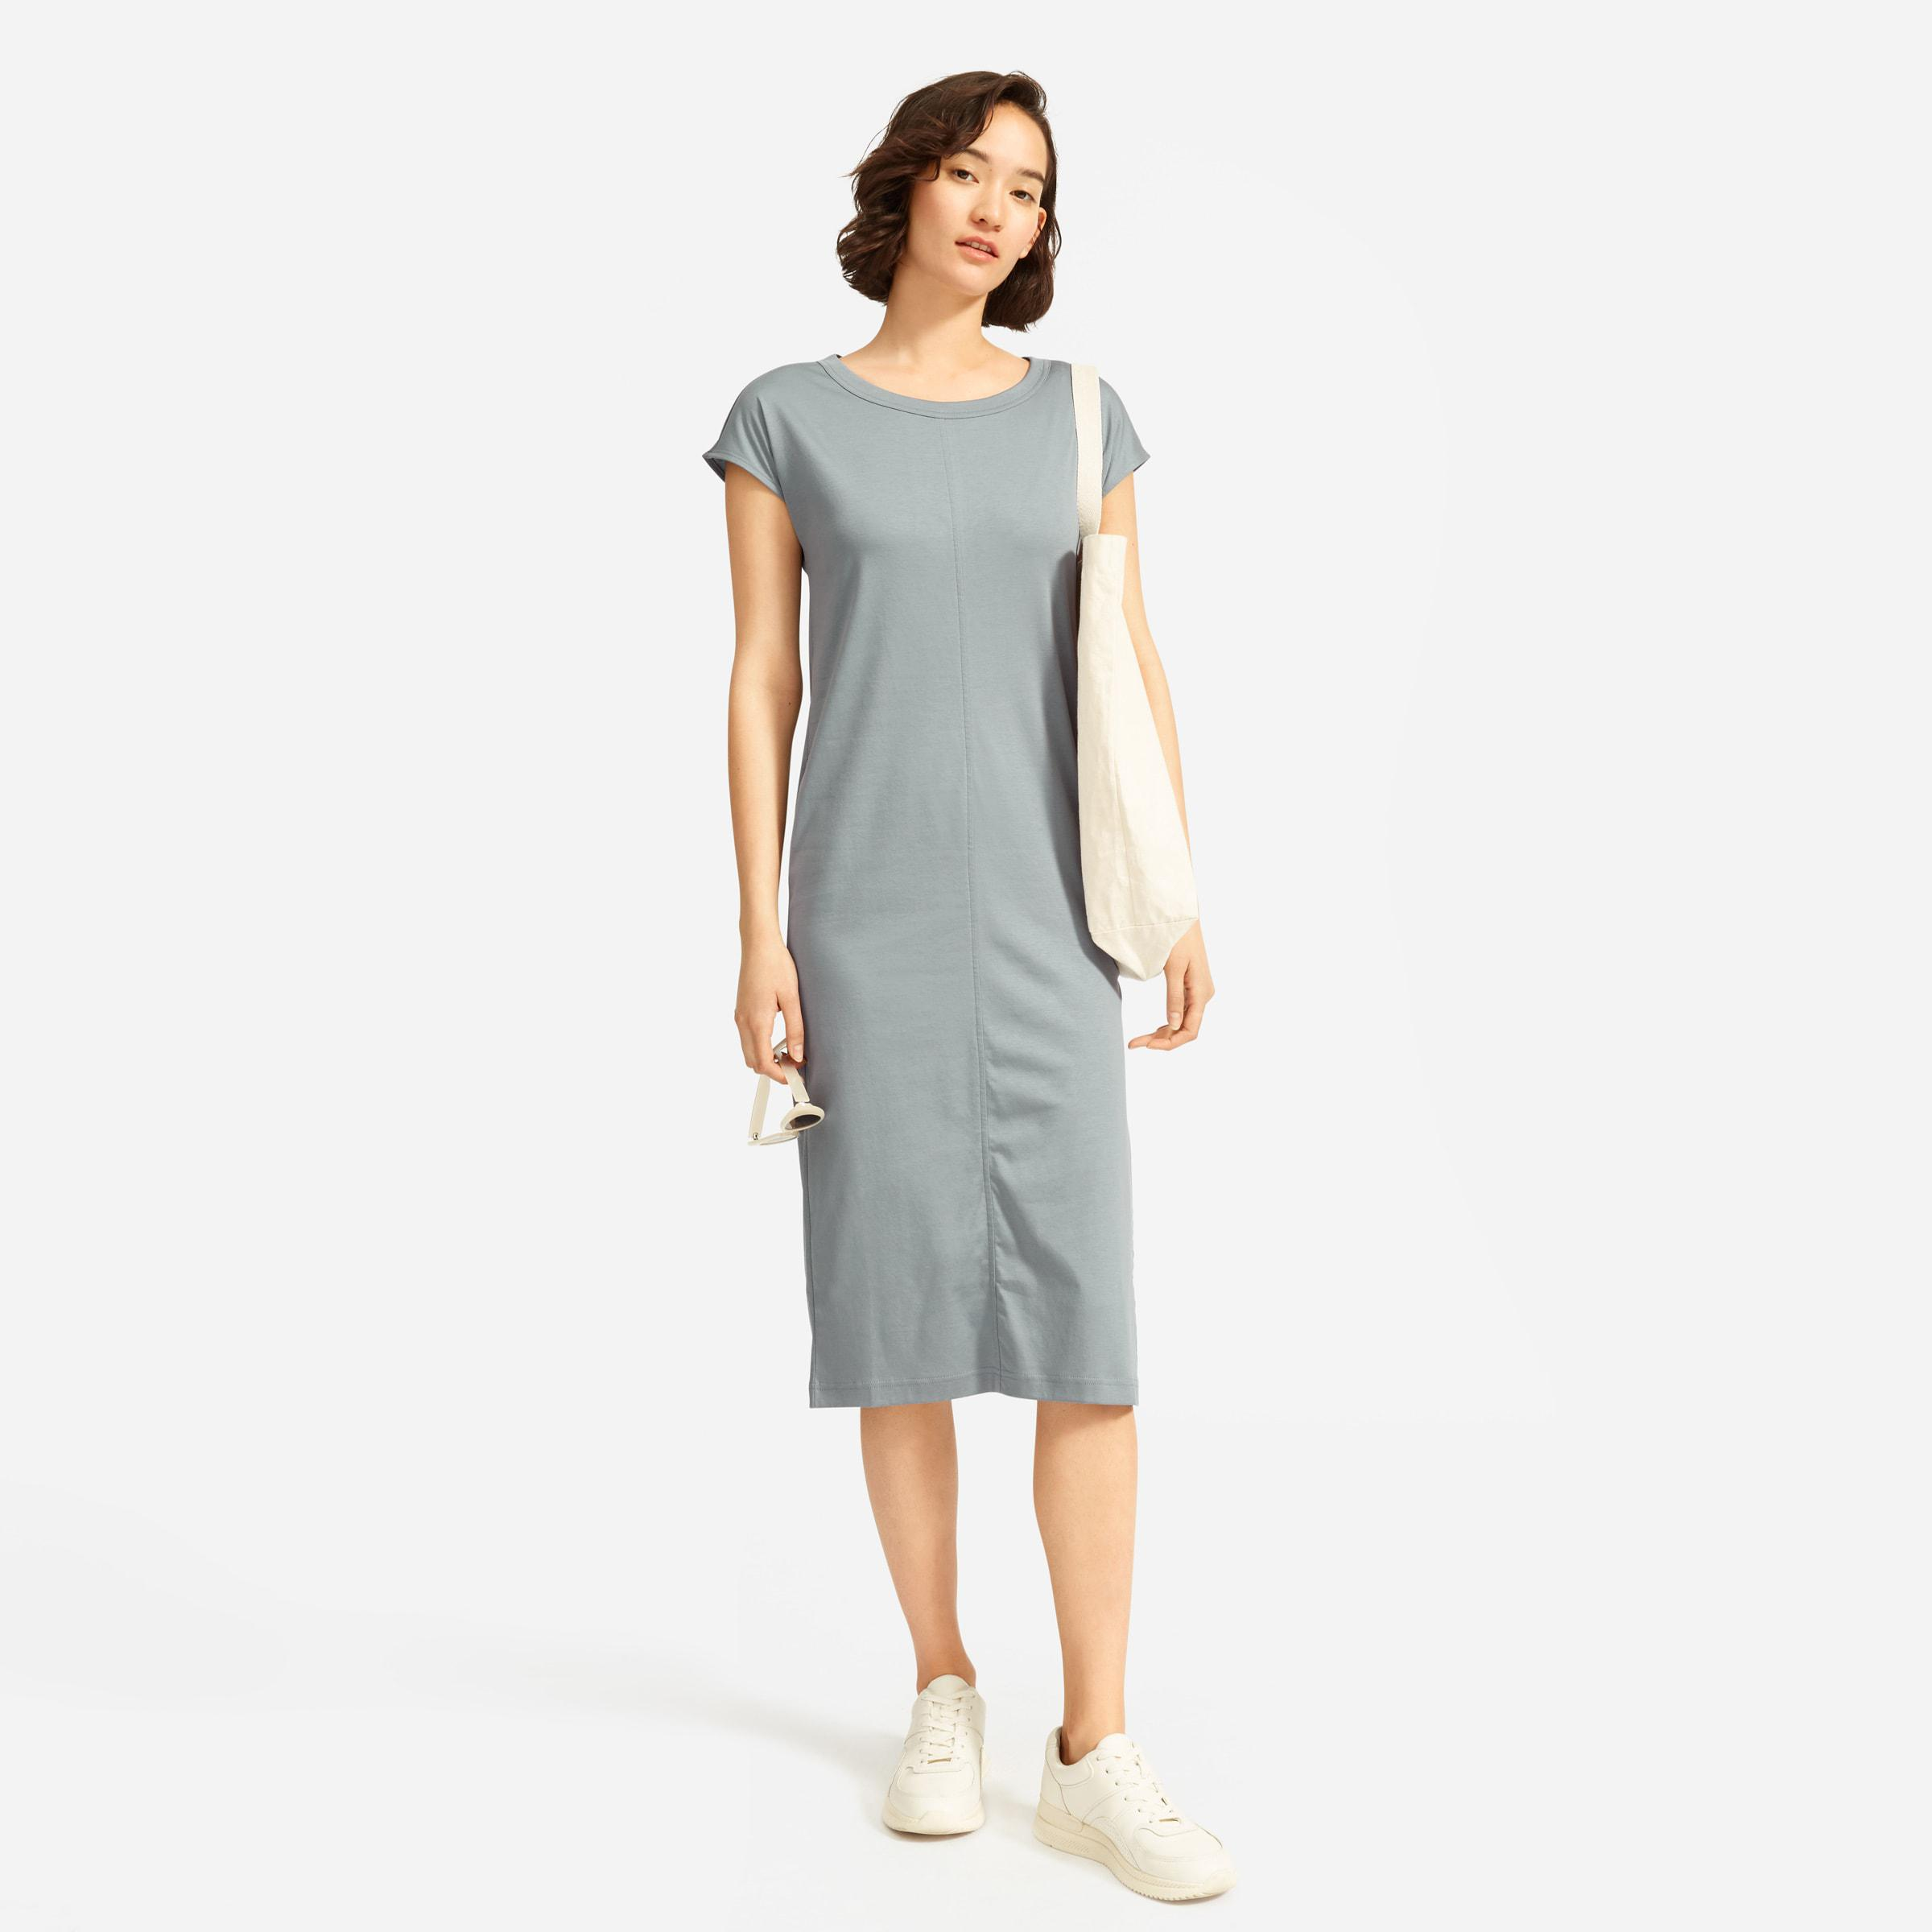 The Luxe Cotton Side-Slit Tee Dress